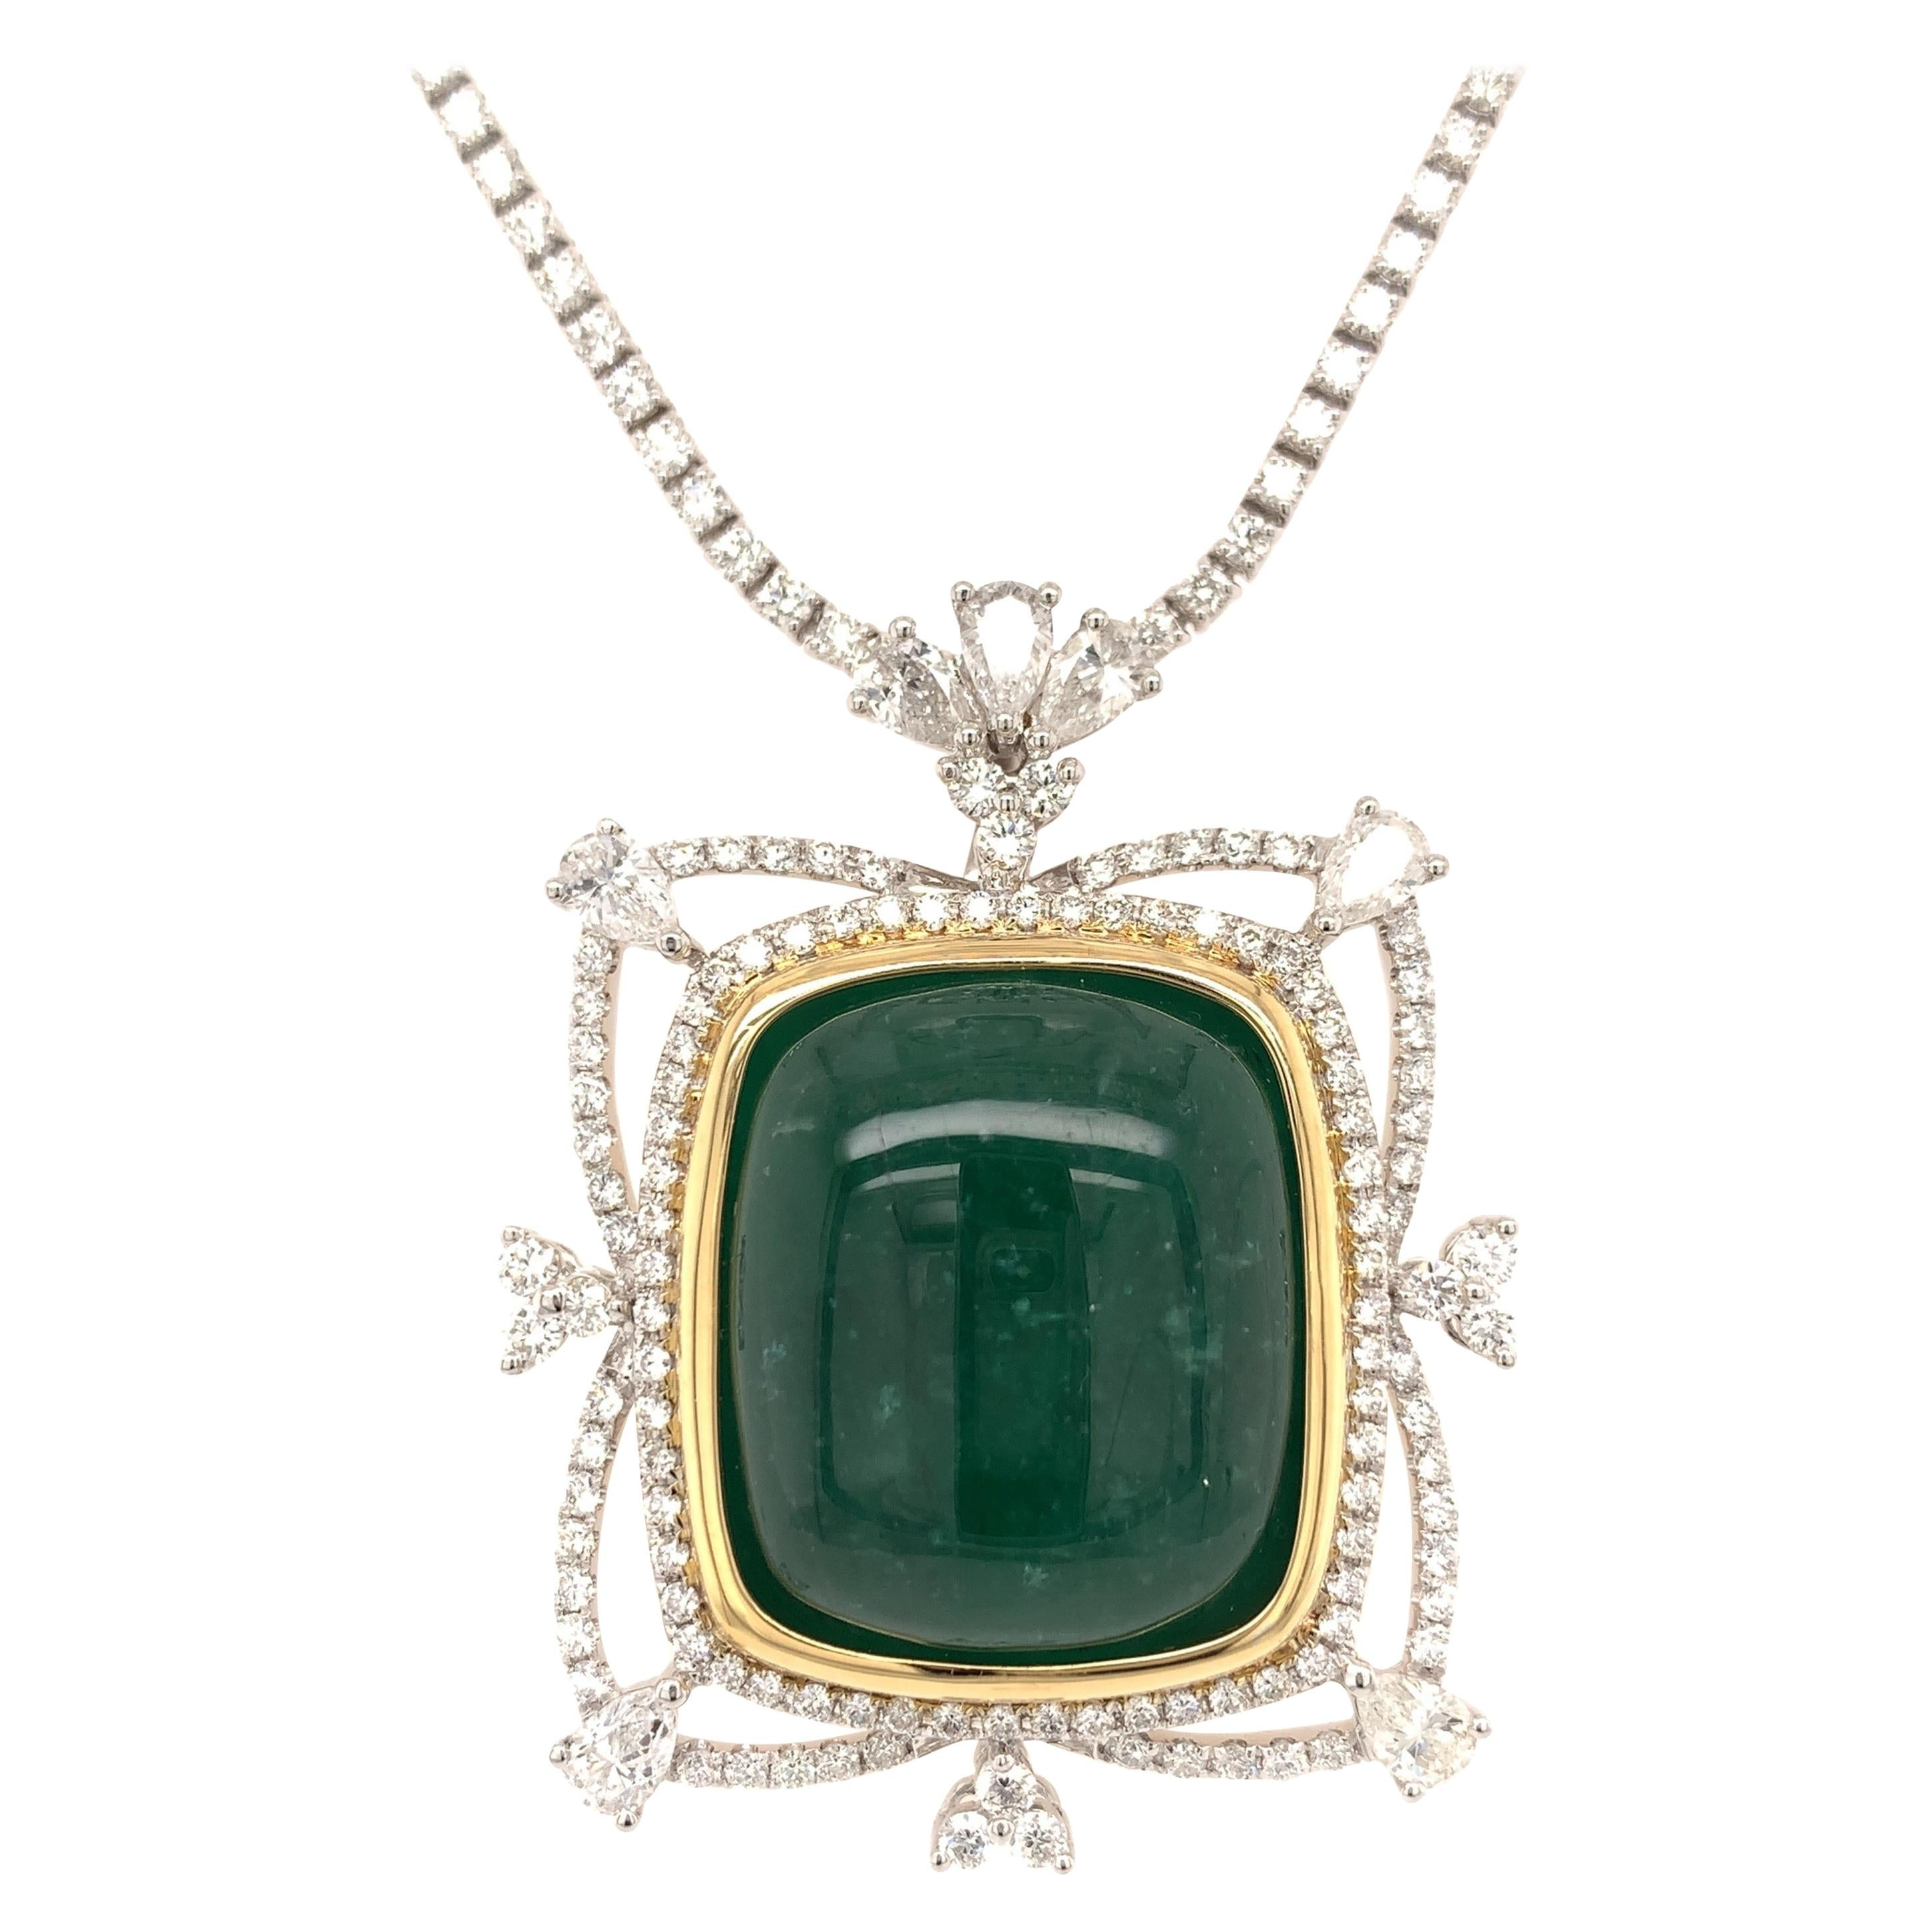 32.63 Carat Colombian Emerald Diamond Necklace